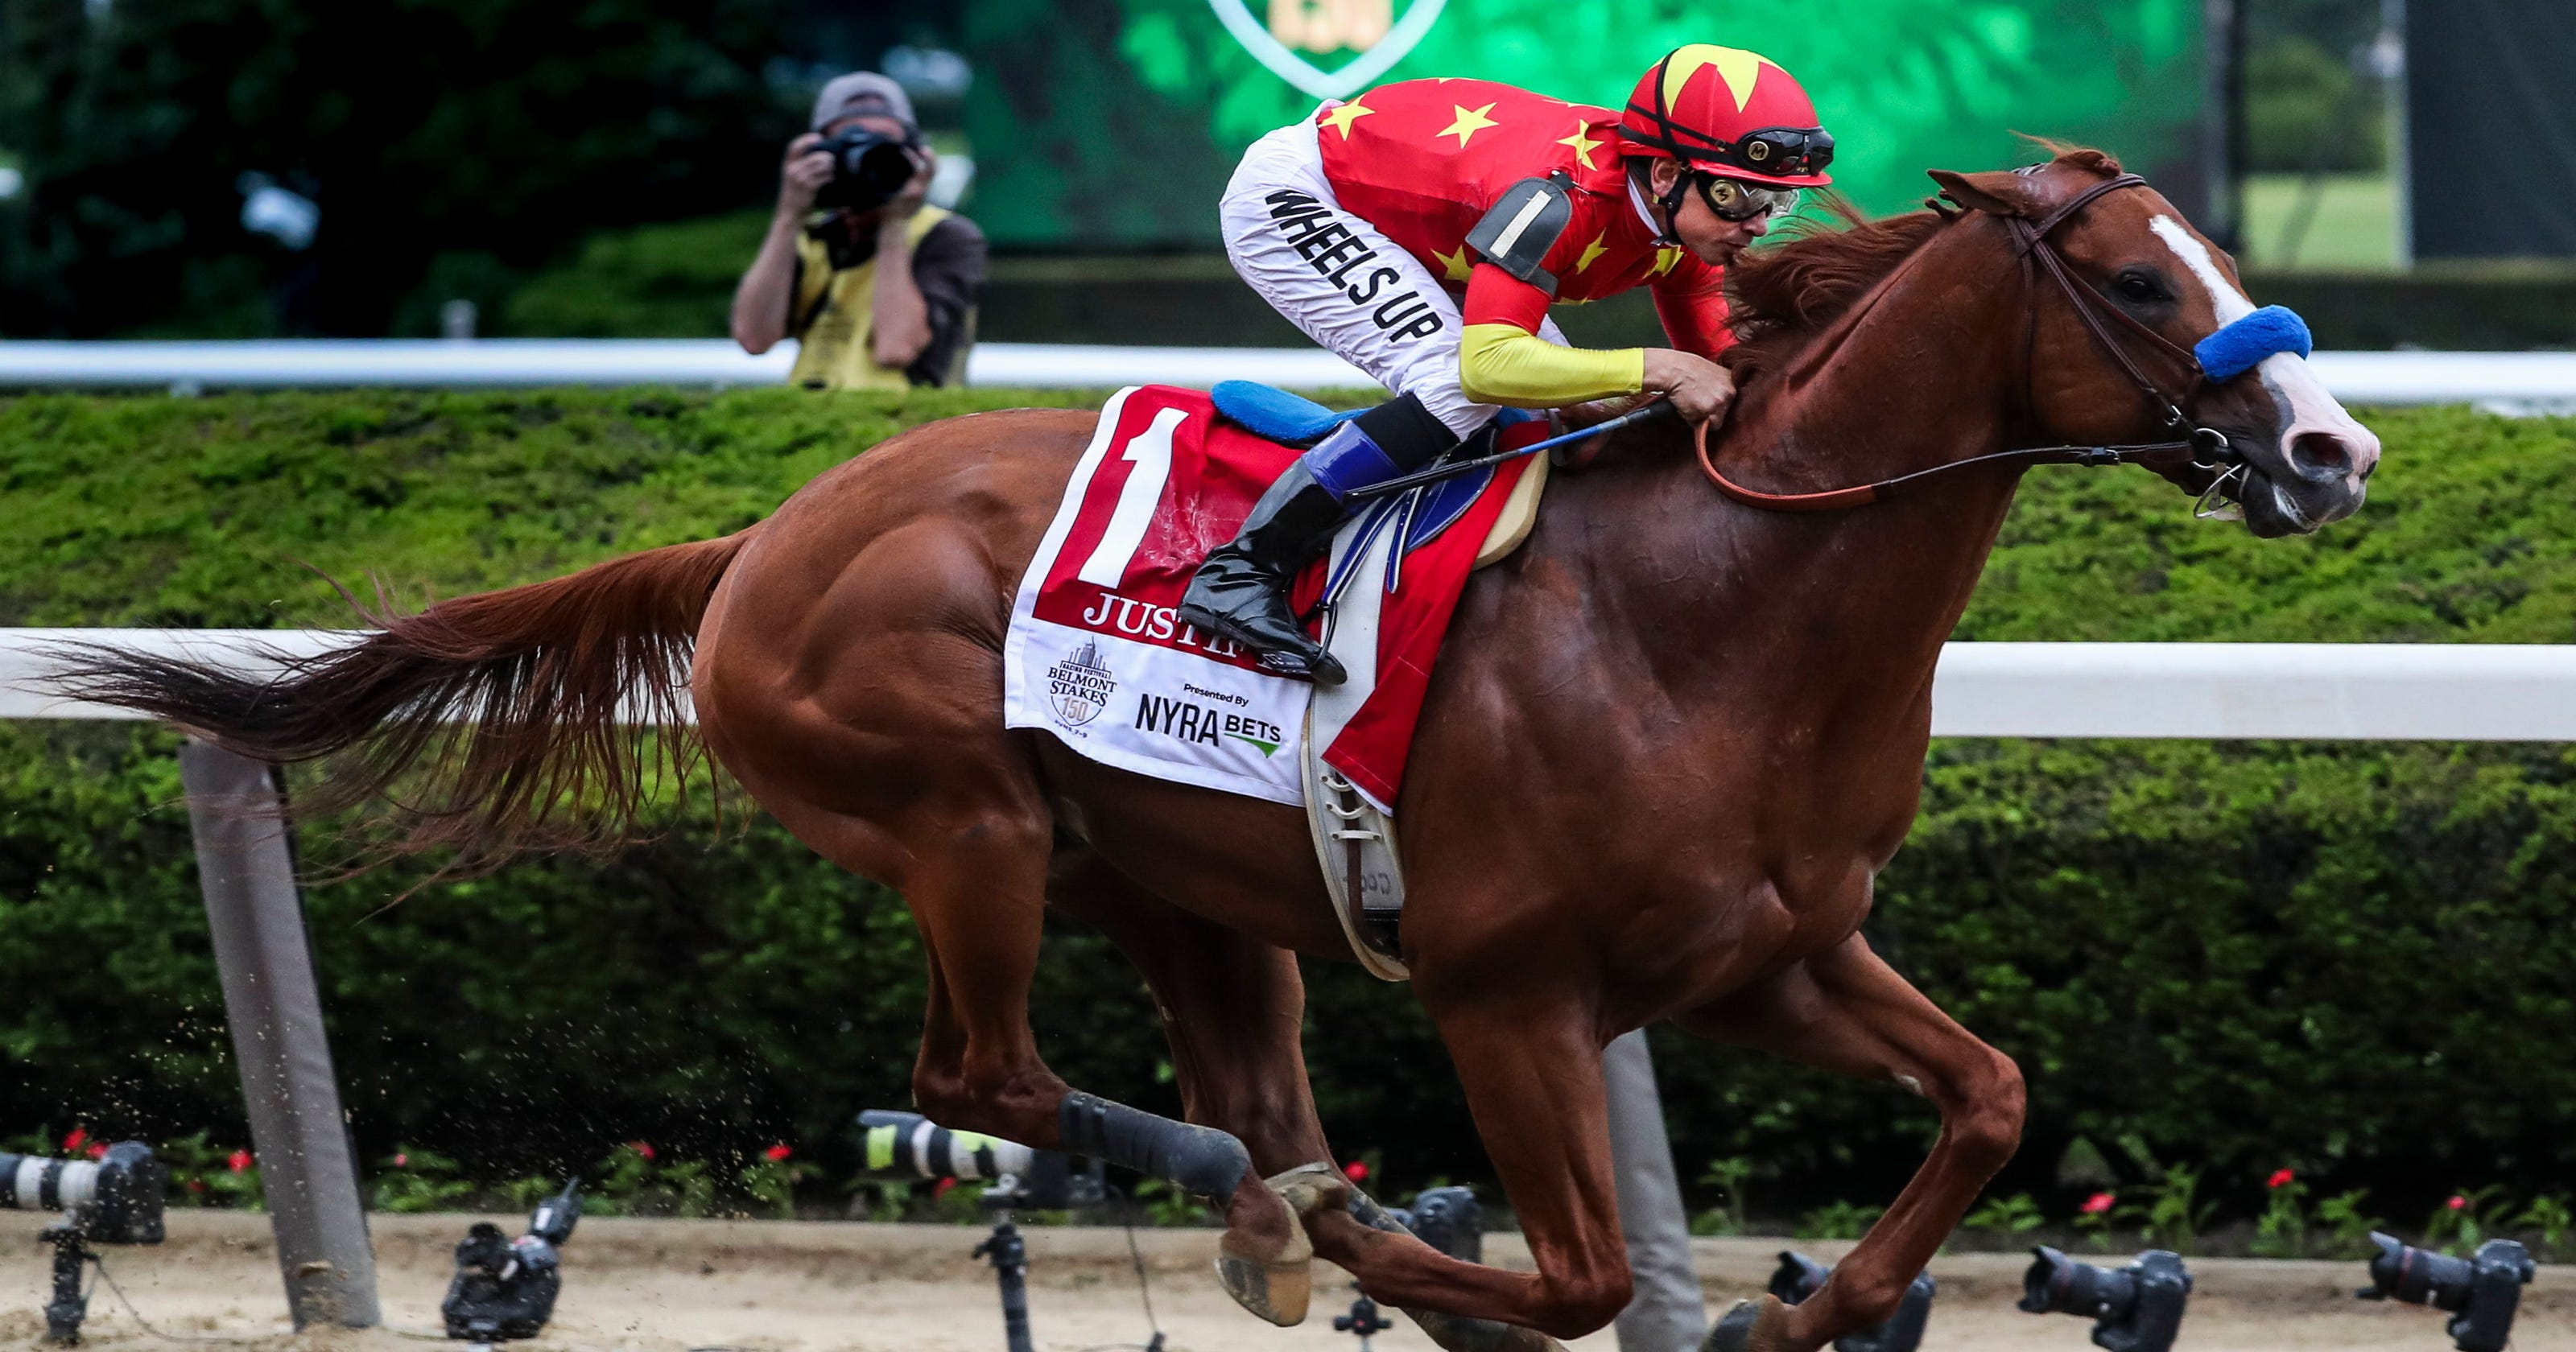 09c0de787eff Here are 3 possibilities for Justify s next race